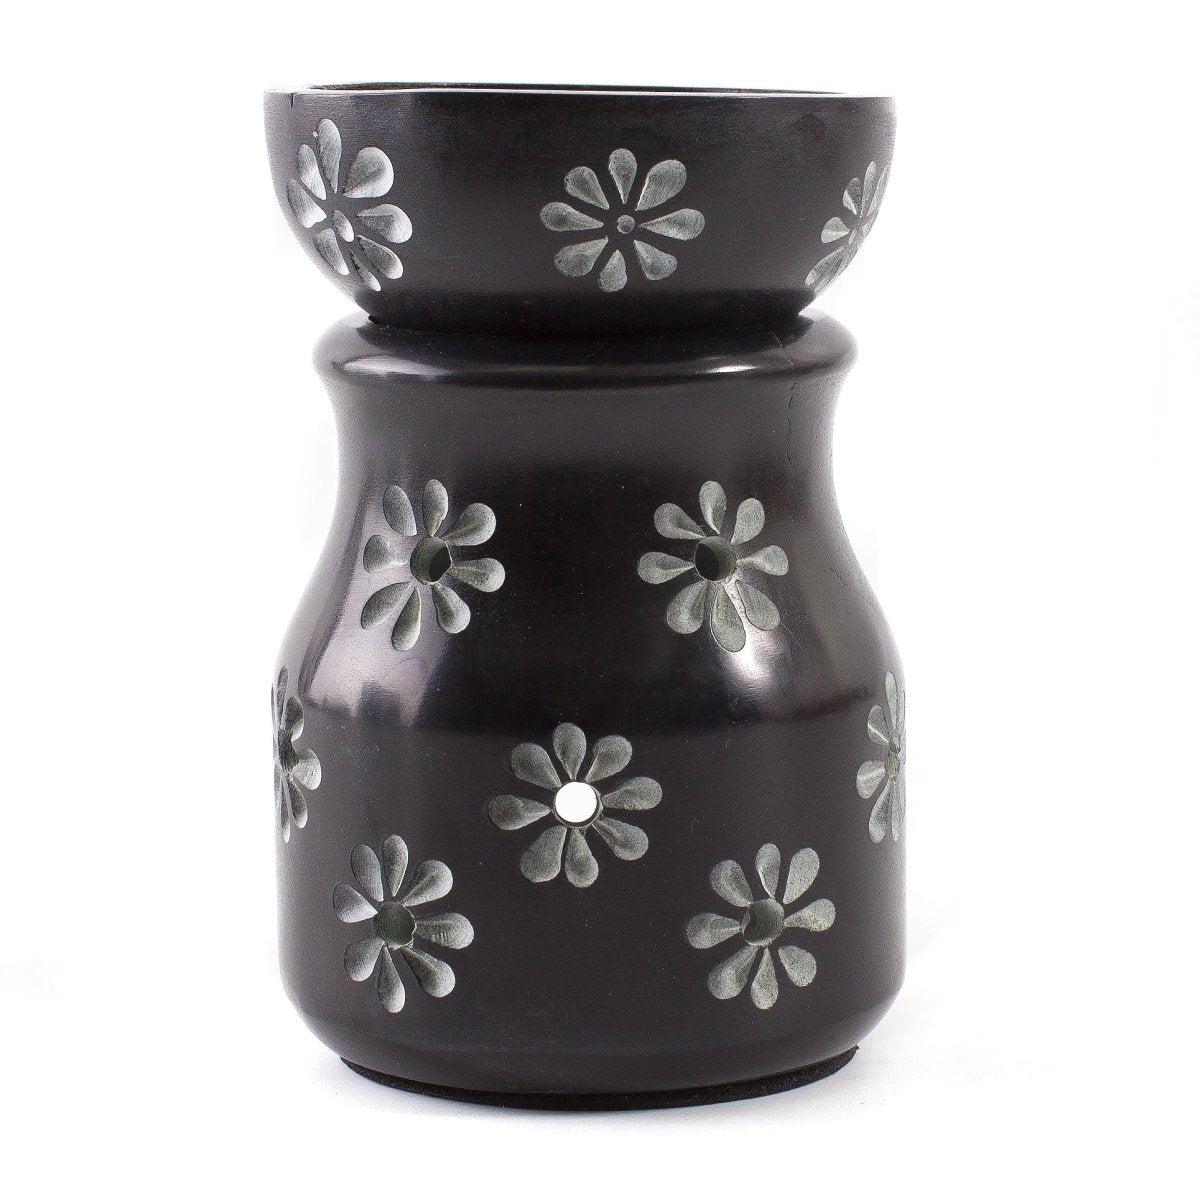 Black with Flowers Soapstone Oil Burner - Mystic Moments UK